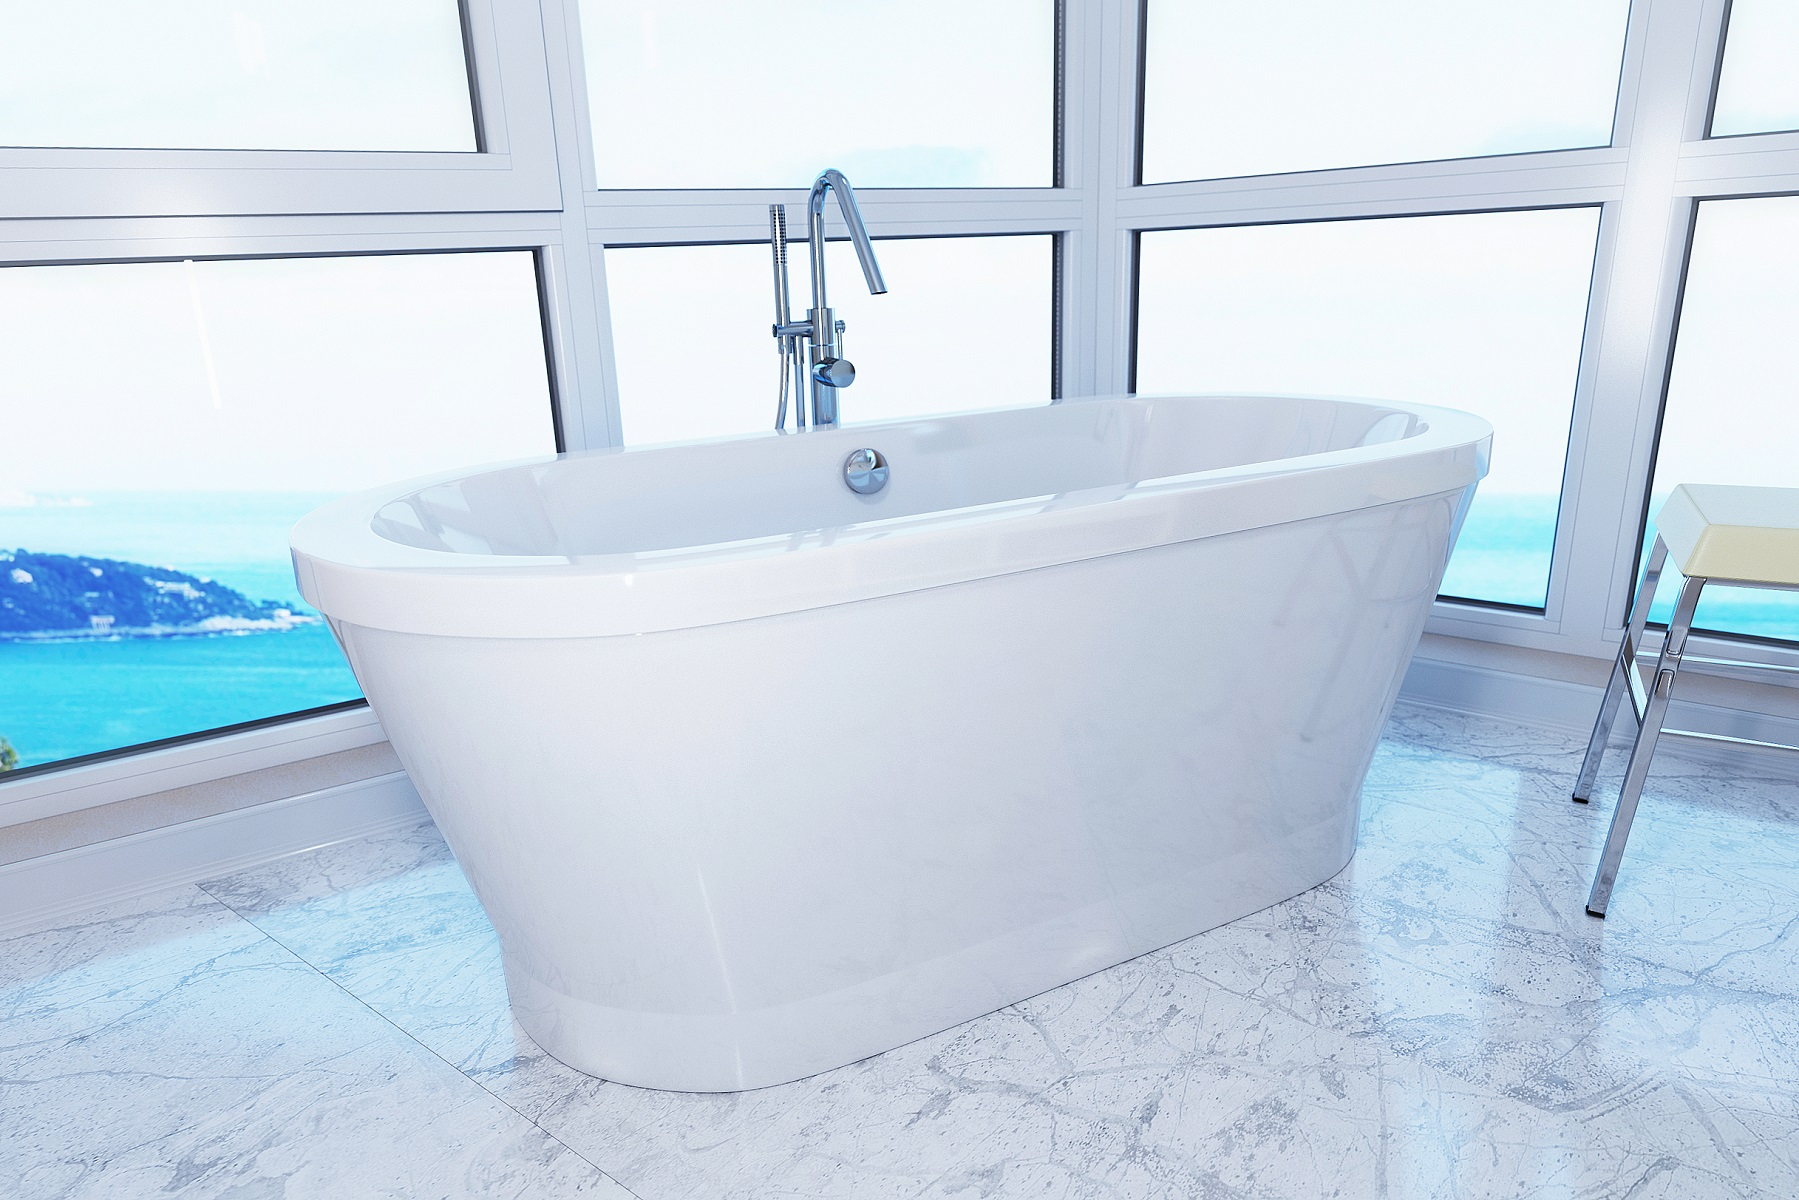 Freestanding Acrylic Bathtubs - Bathtub Ideas